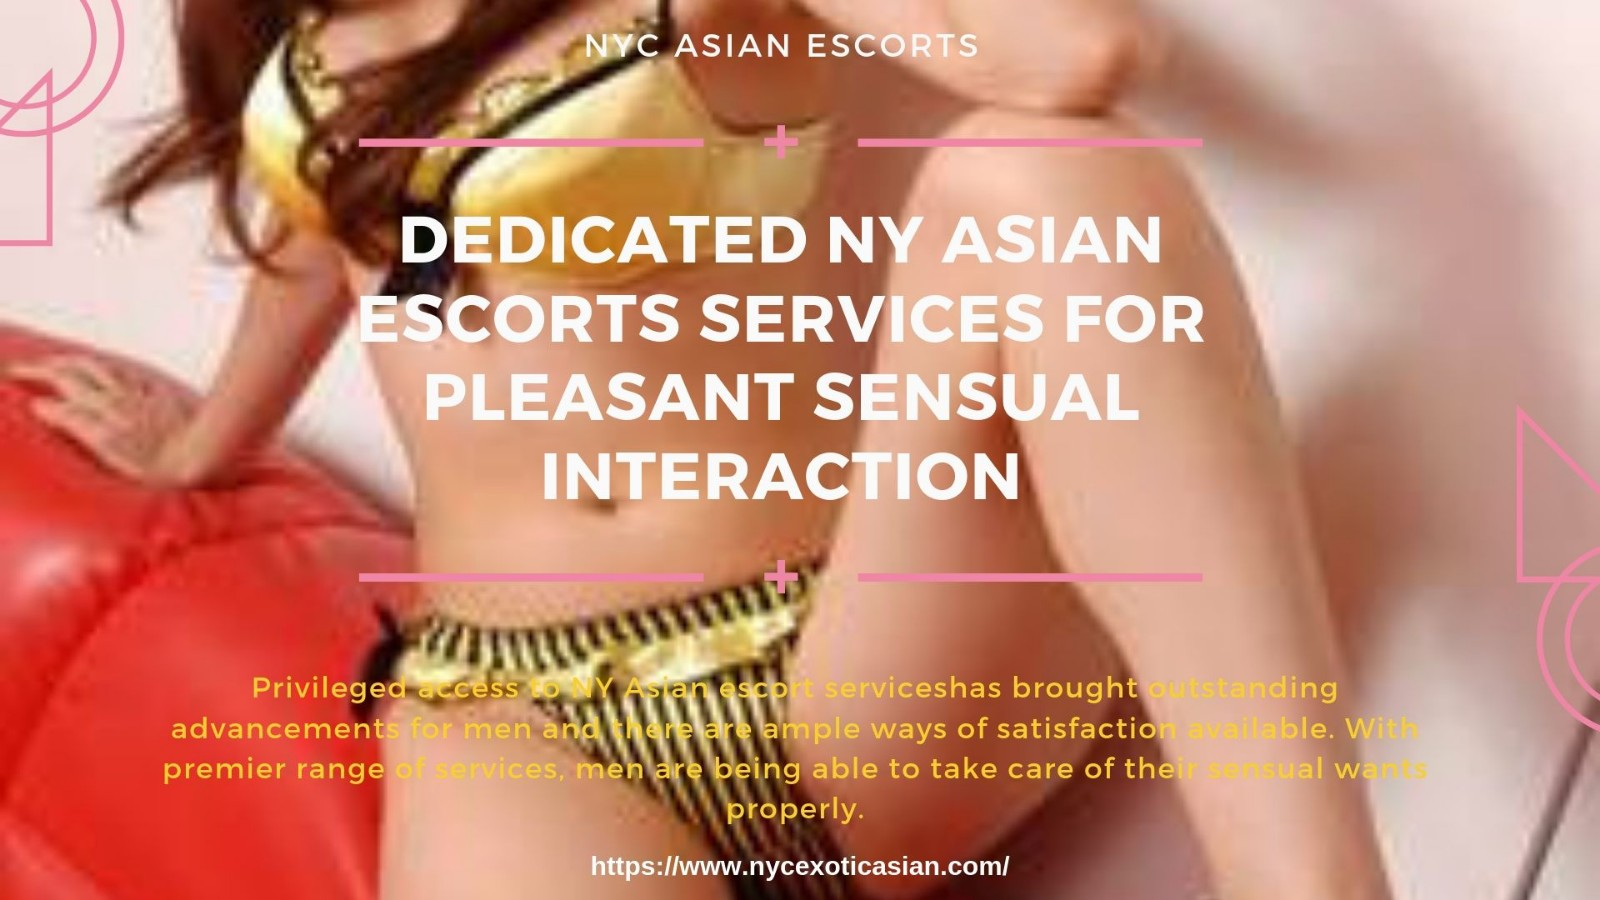 Always Get the Best Asian escorts NYC with the Most Reputed Agency